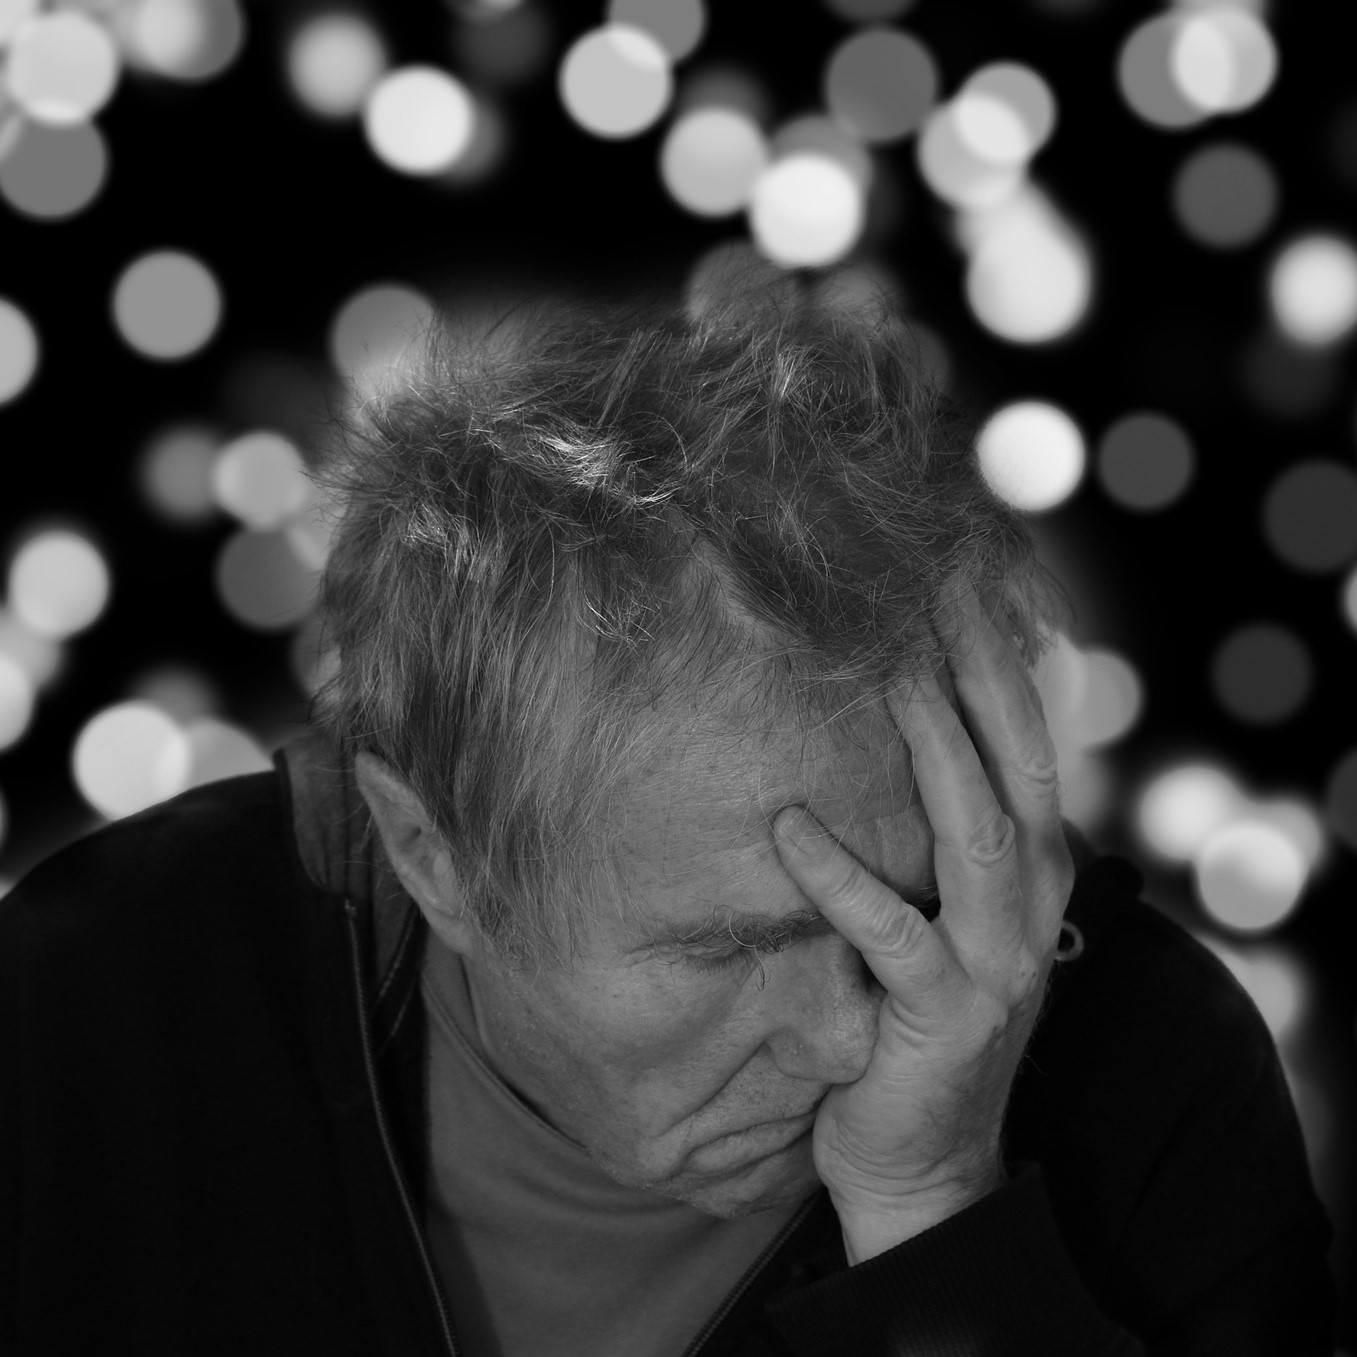 The mental health consequences of COVID grow increasingly clear